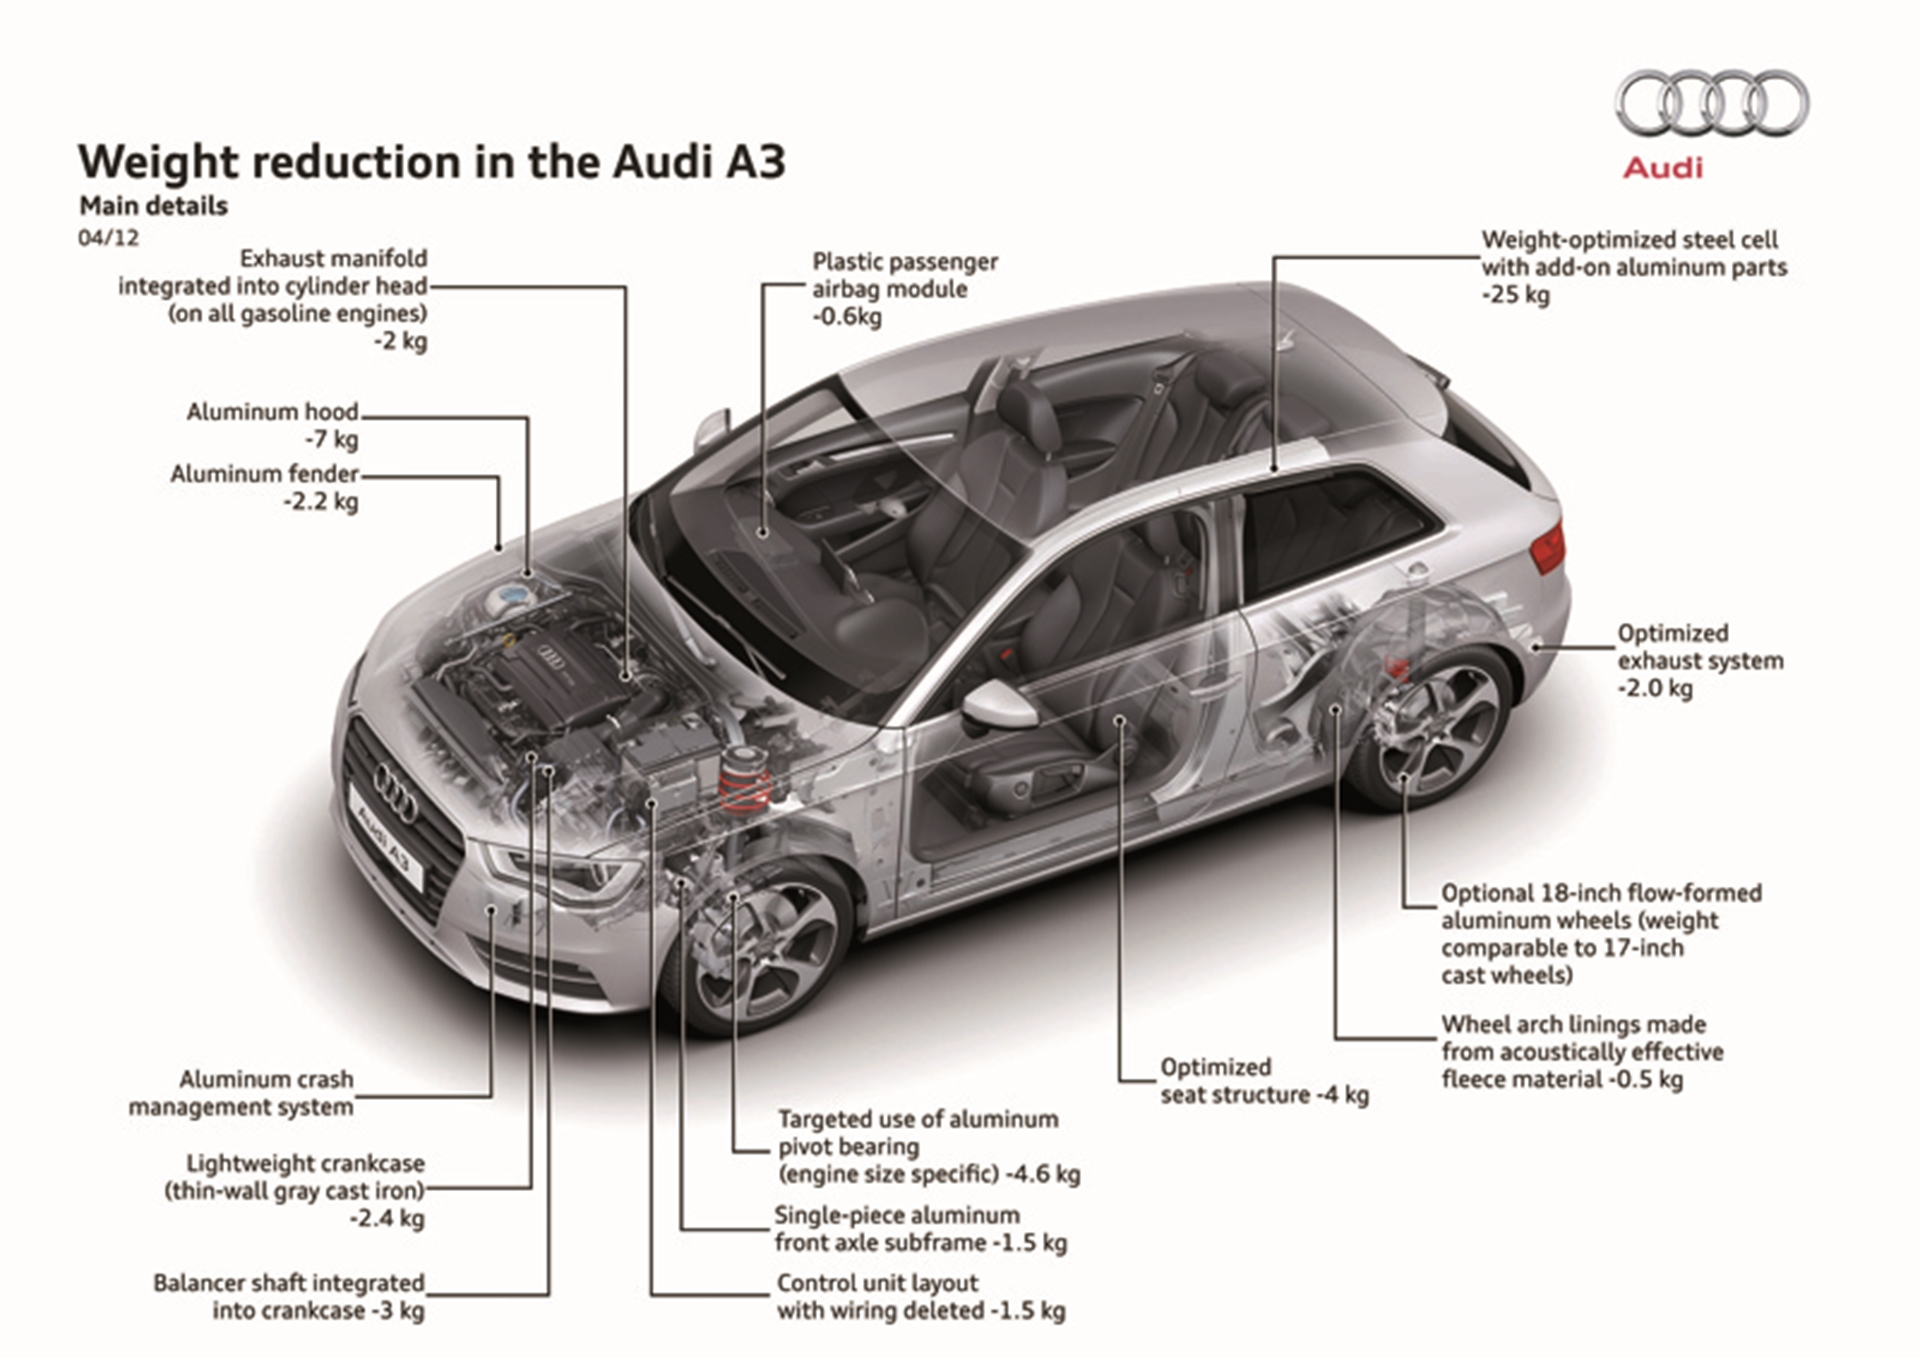 Audi Weight Reduction